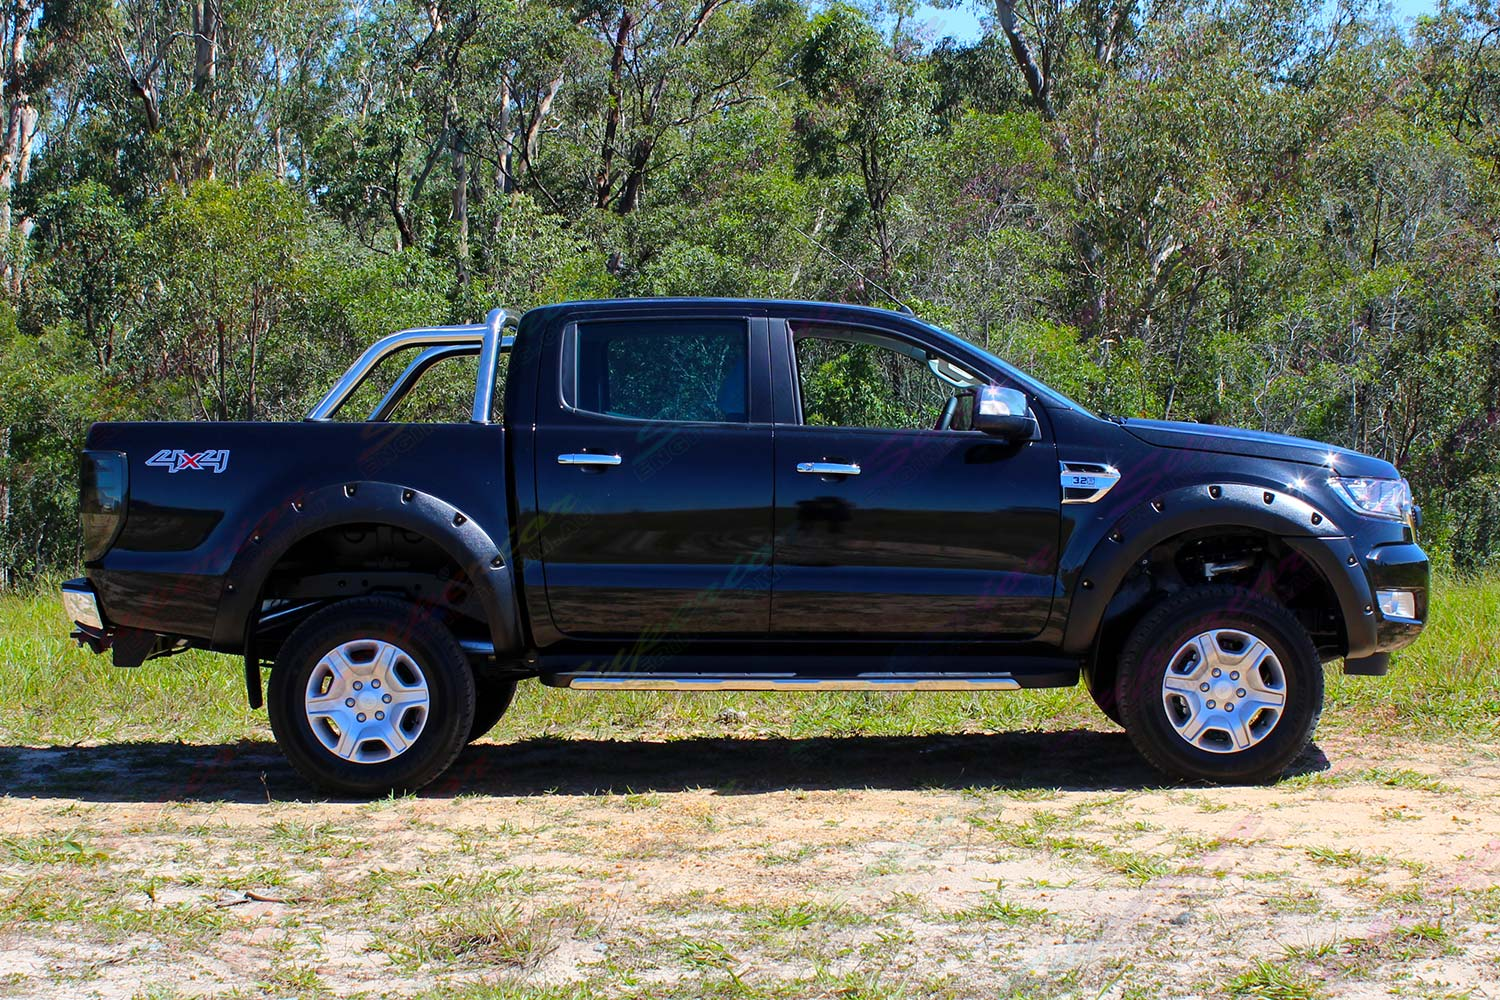 Ford Ranger PX Dual Cab Black - Side View